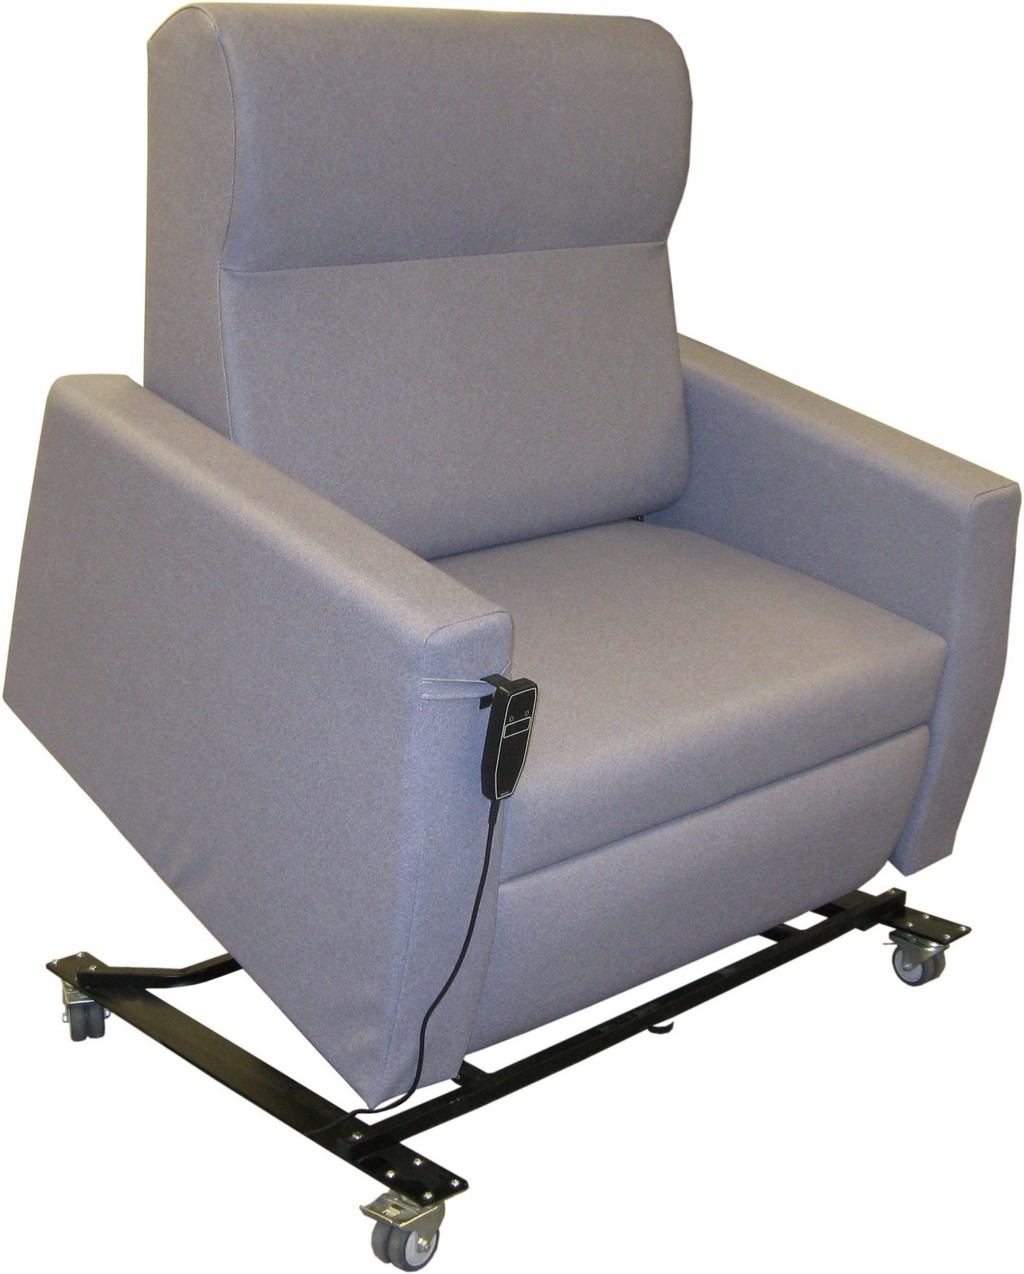 power chair lift, medicare lift chair, search lift chairs for sale, bath lift chair